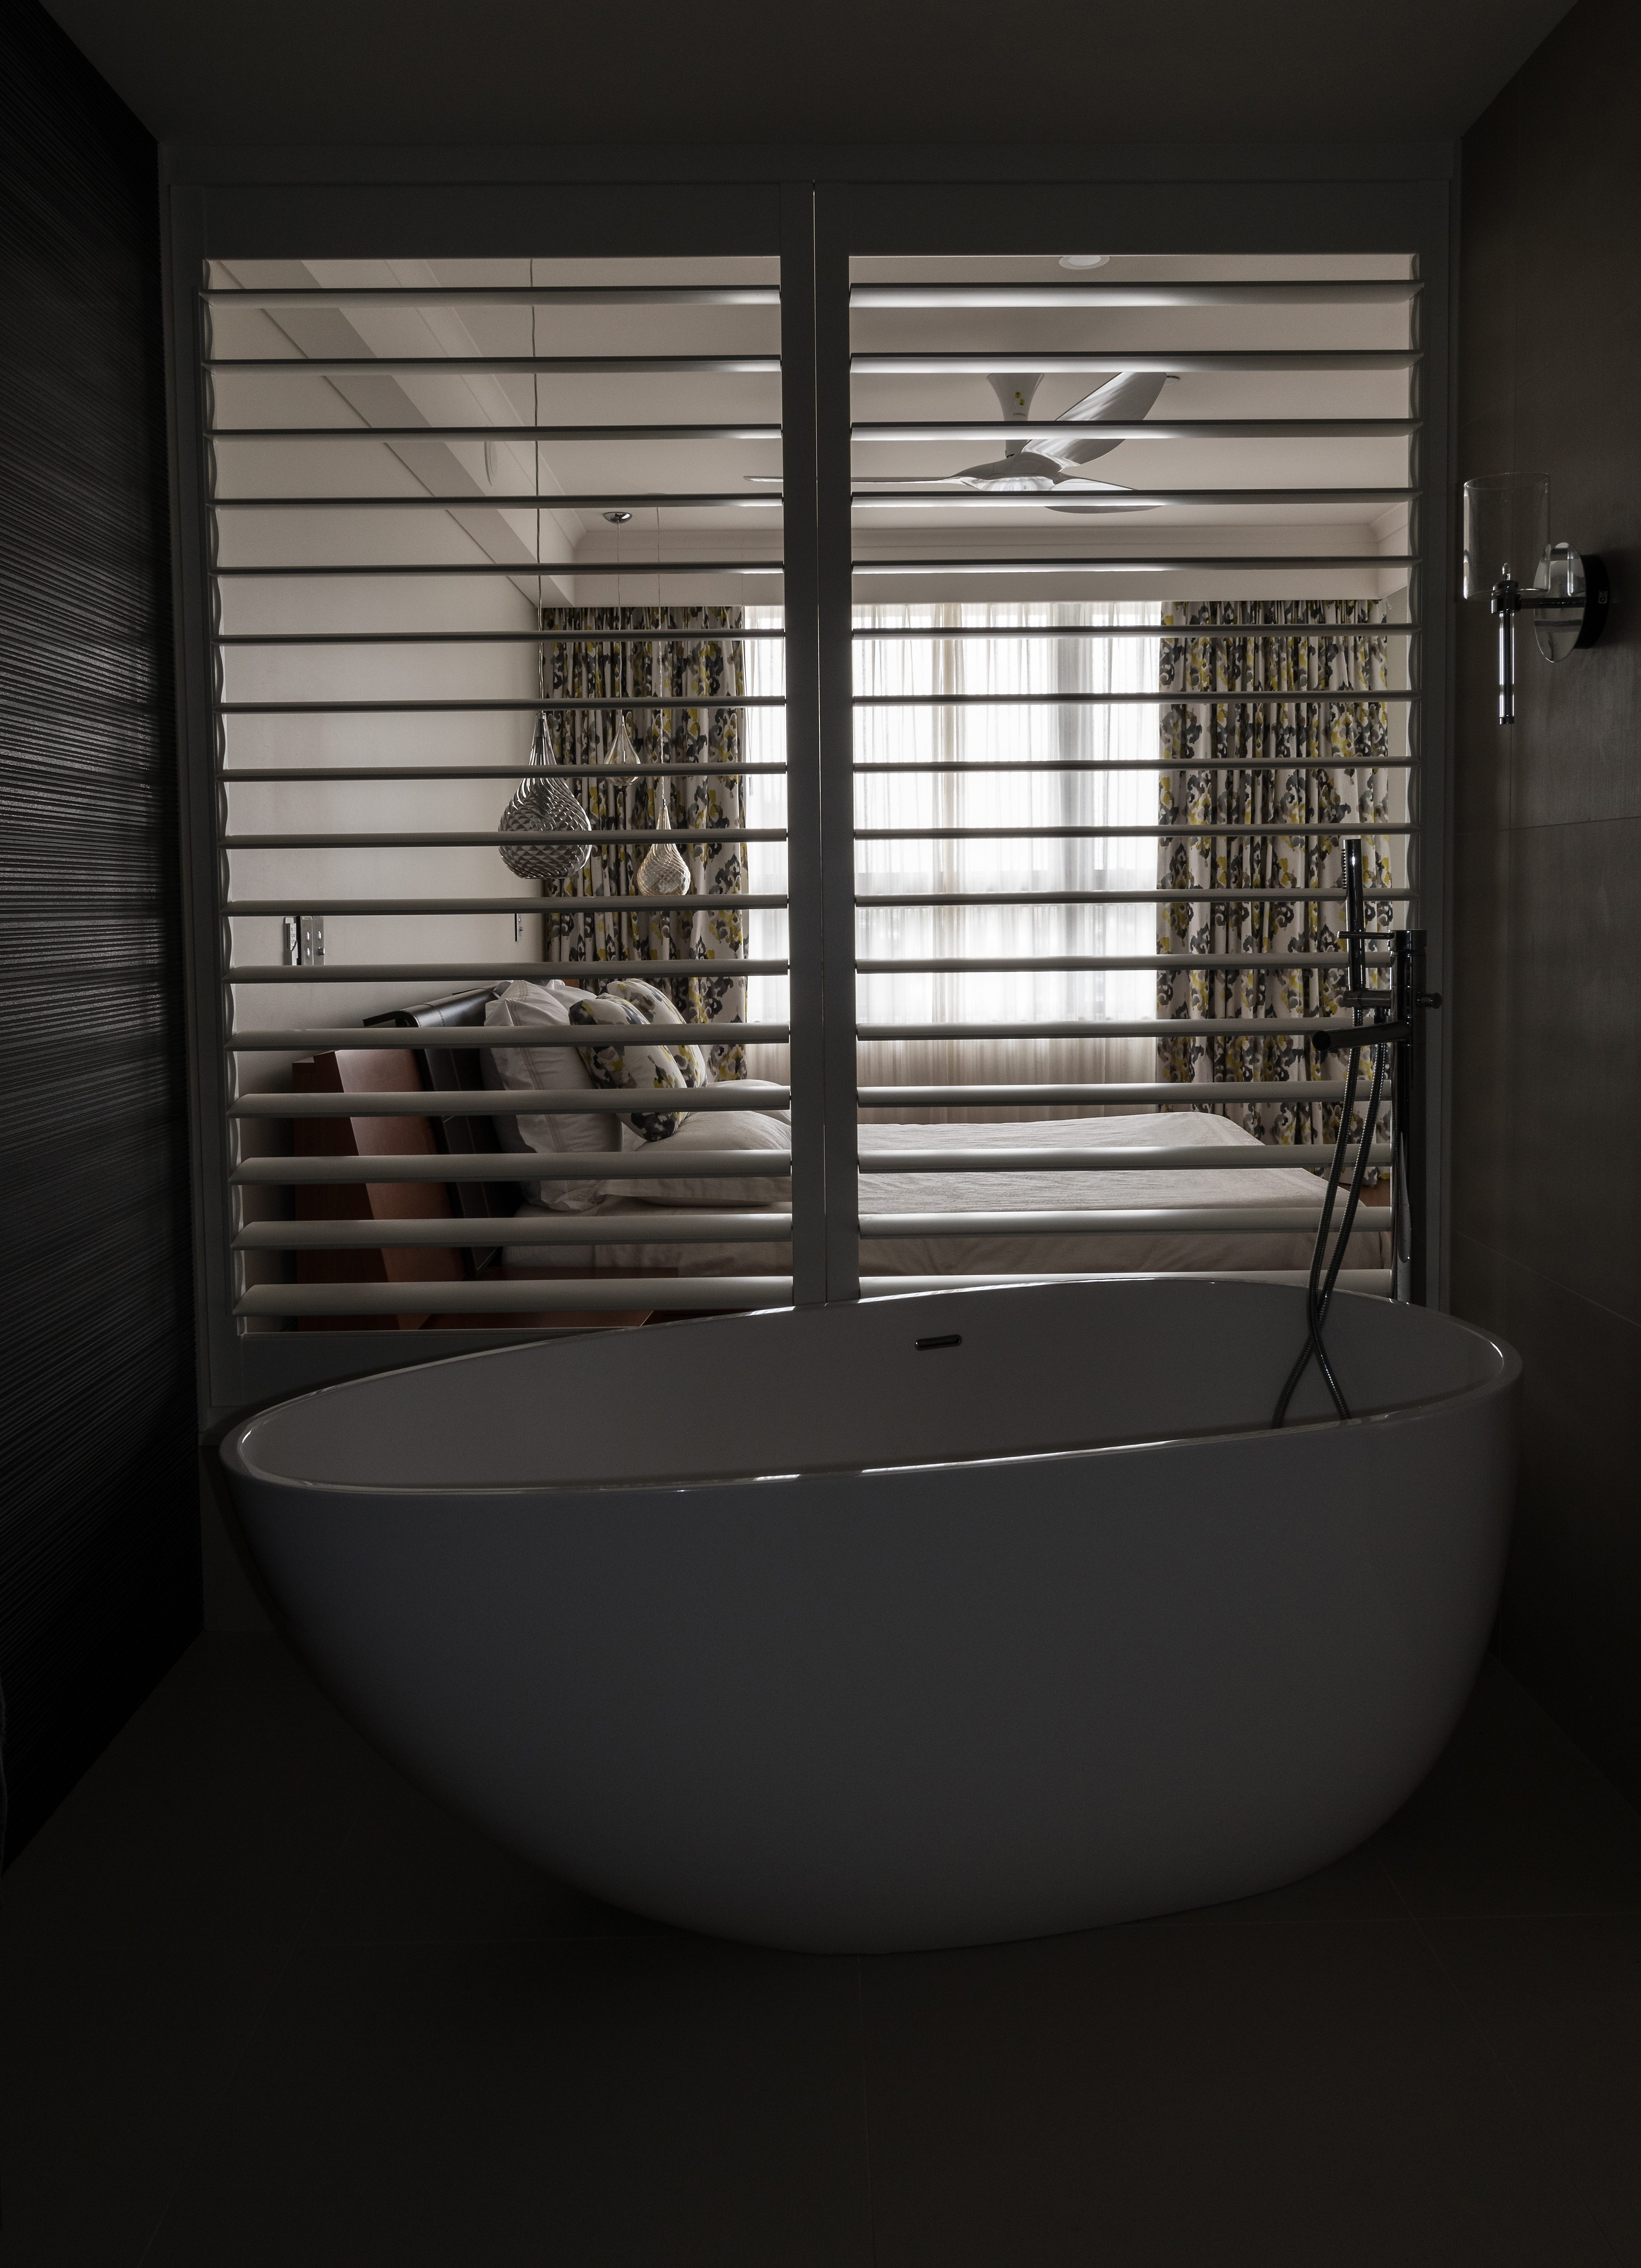 Bath, shutters, curtains and sheers